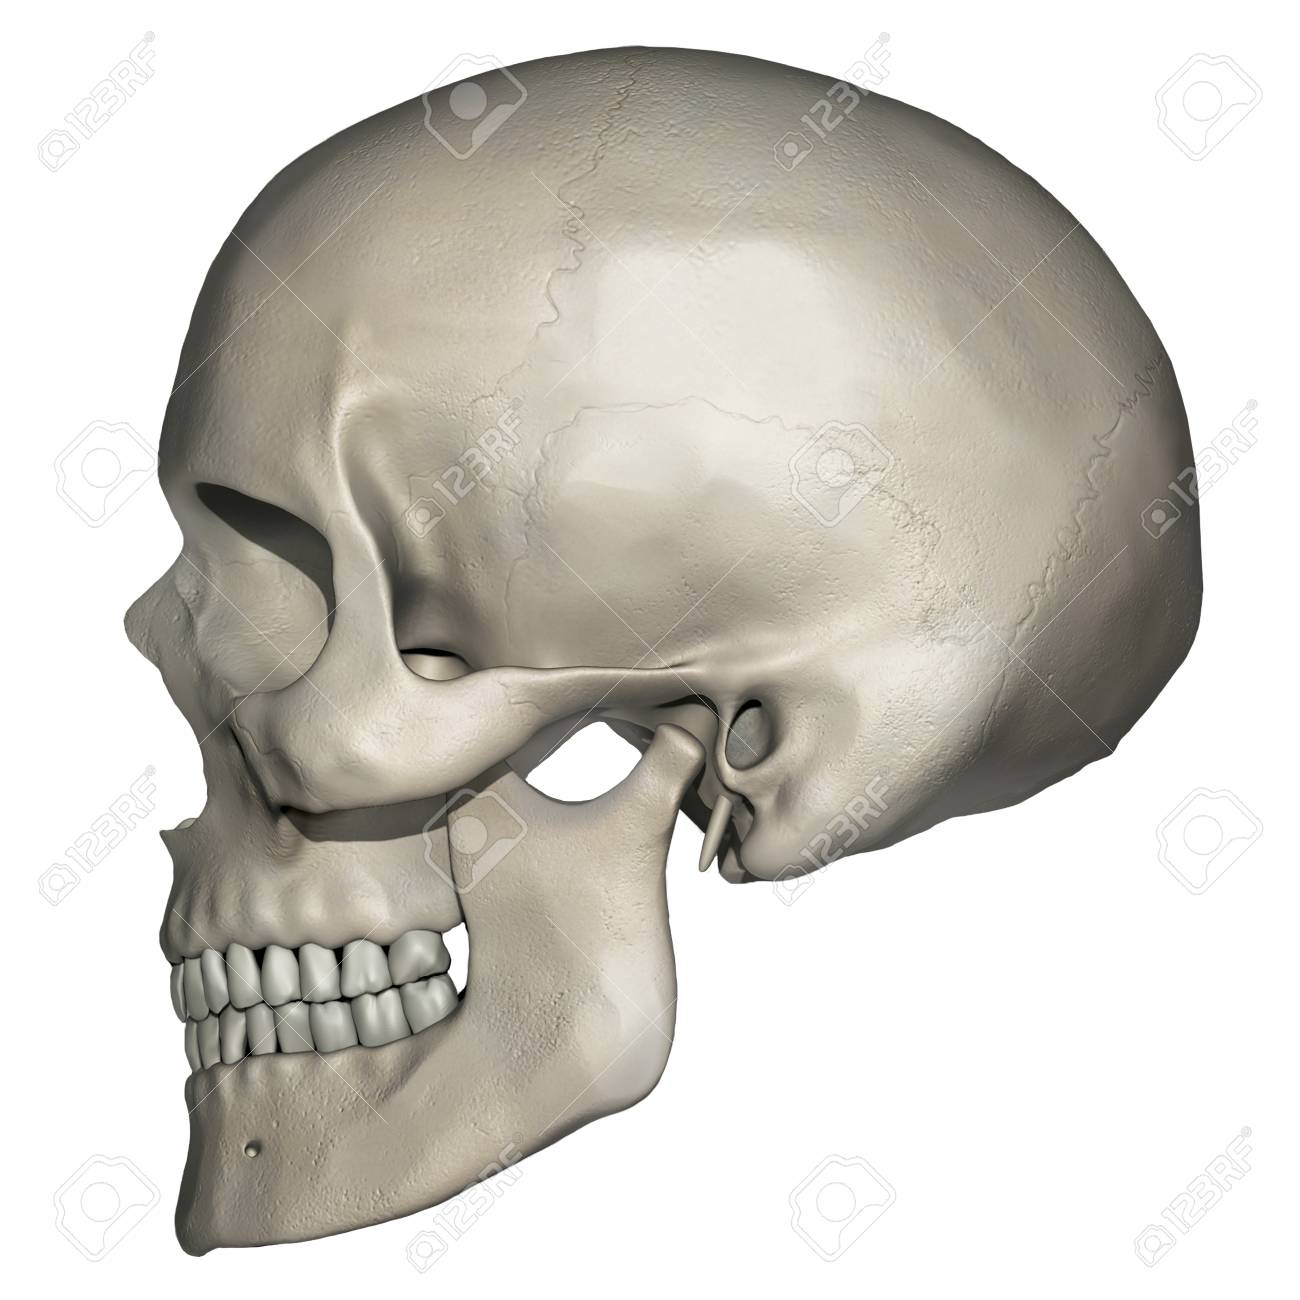 Lateral View Of Human Skull Anatomy Stock Photo Picture And Royalty